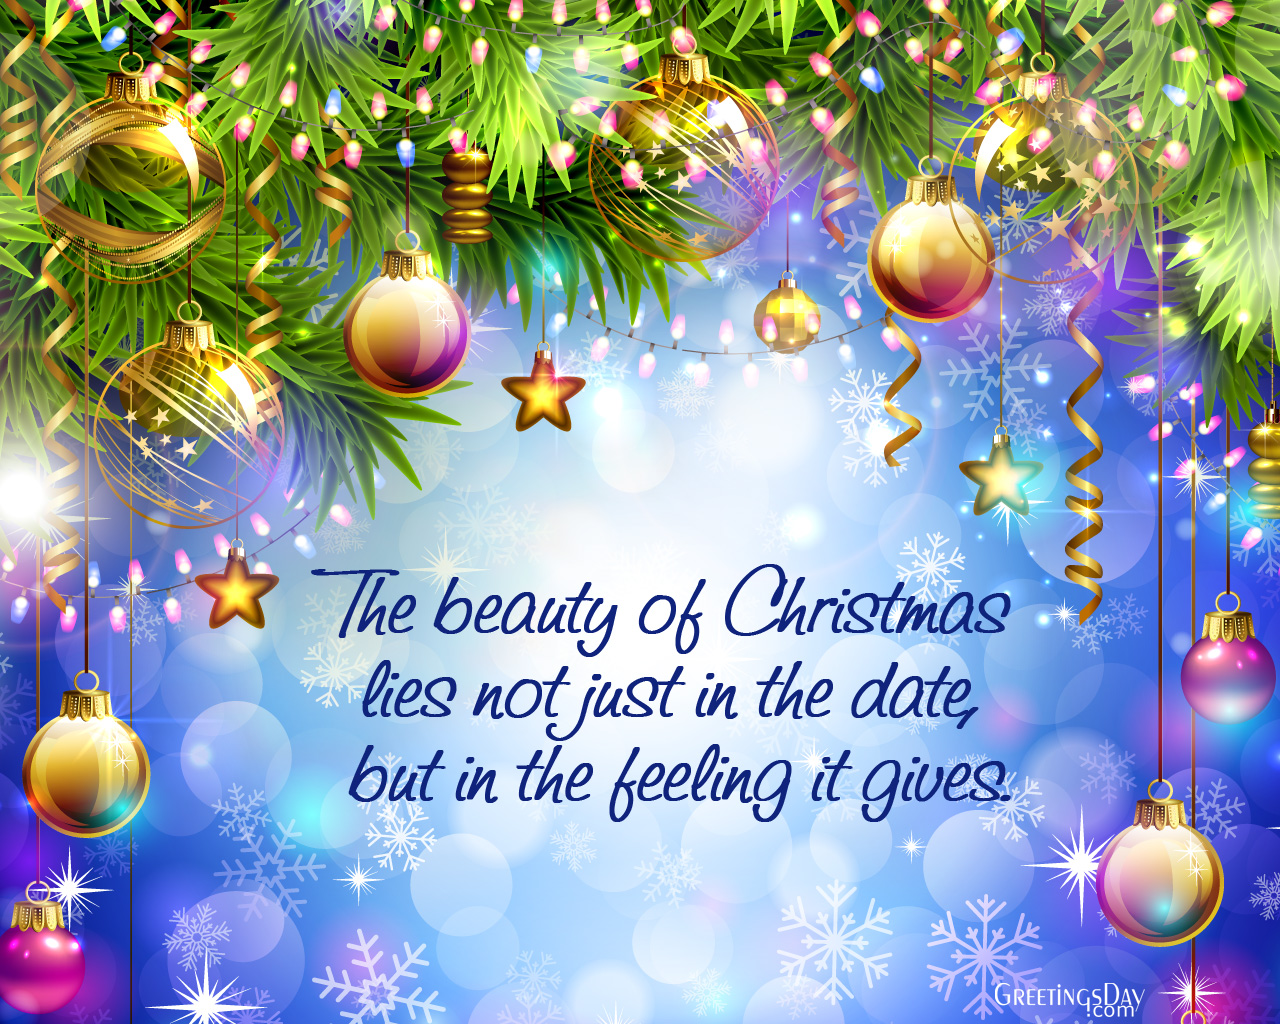 The 45 Best Inspirational Merry Christmas Quotes Of All: Daily ECards, Pictures & Animated GIFs. Greetings For Share